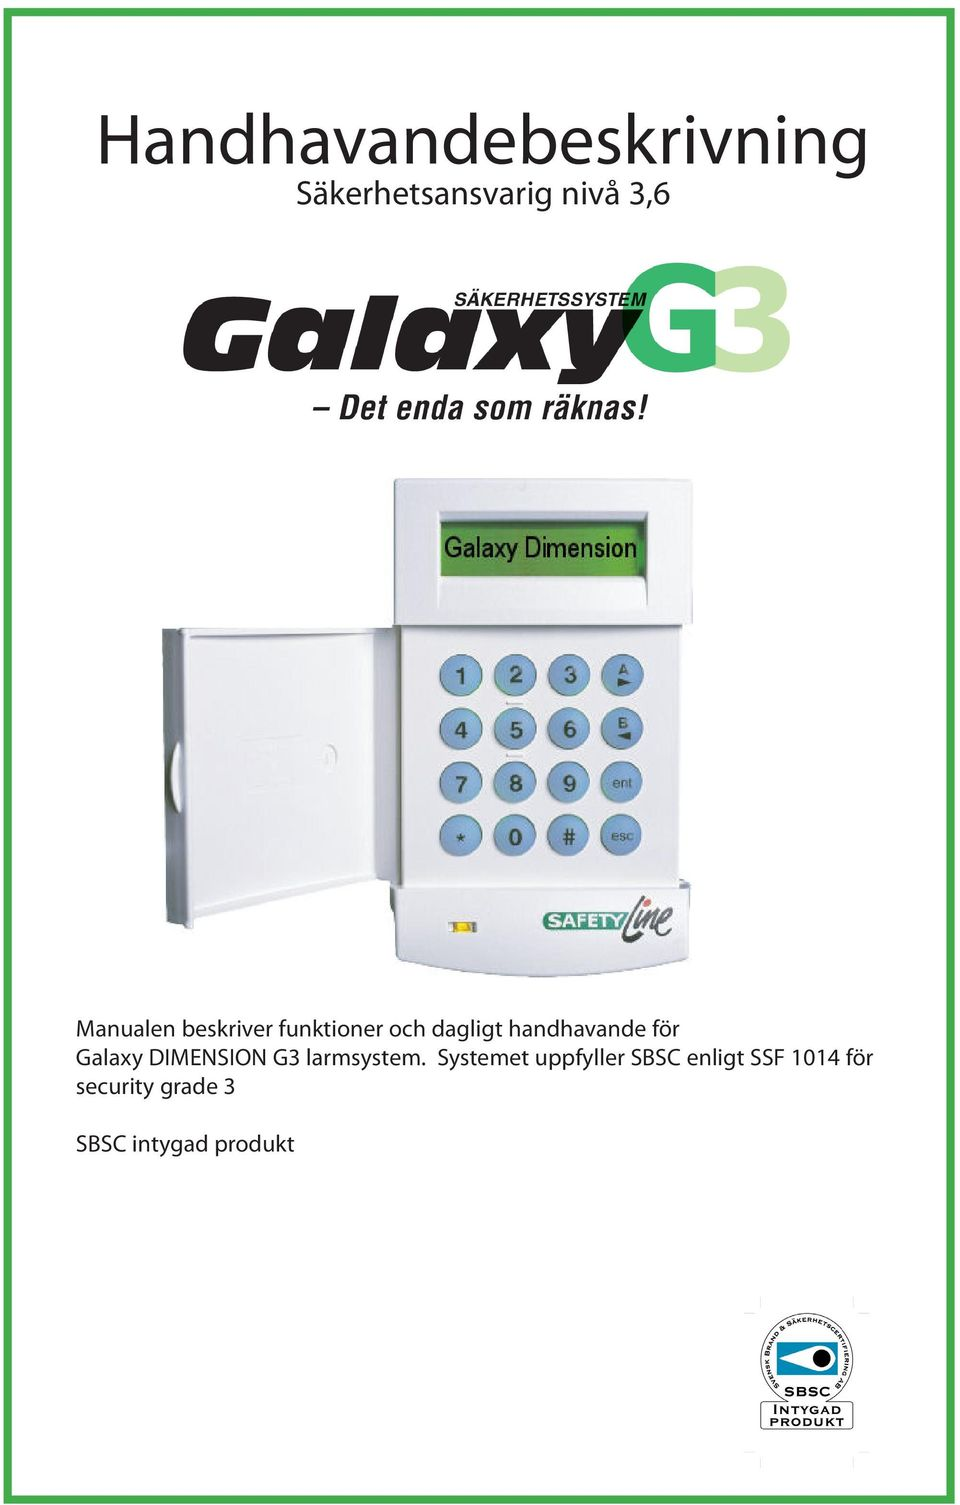 för Galaxy DIMENSION G3 larmsystem.